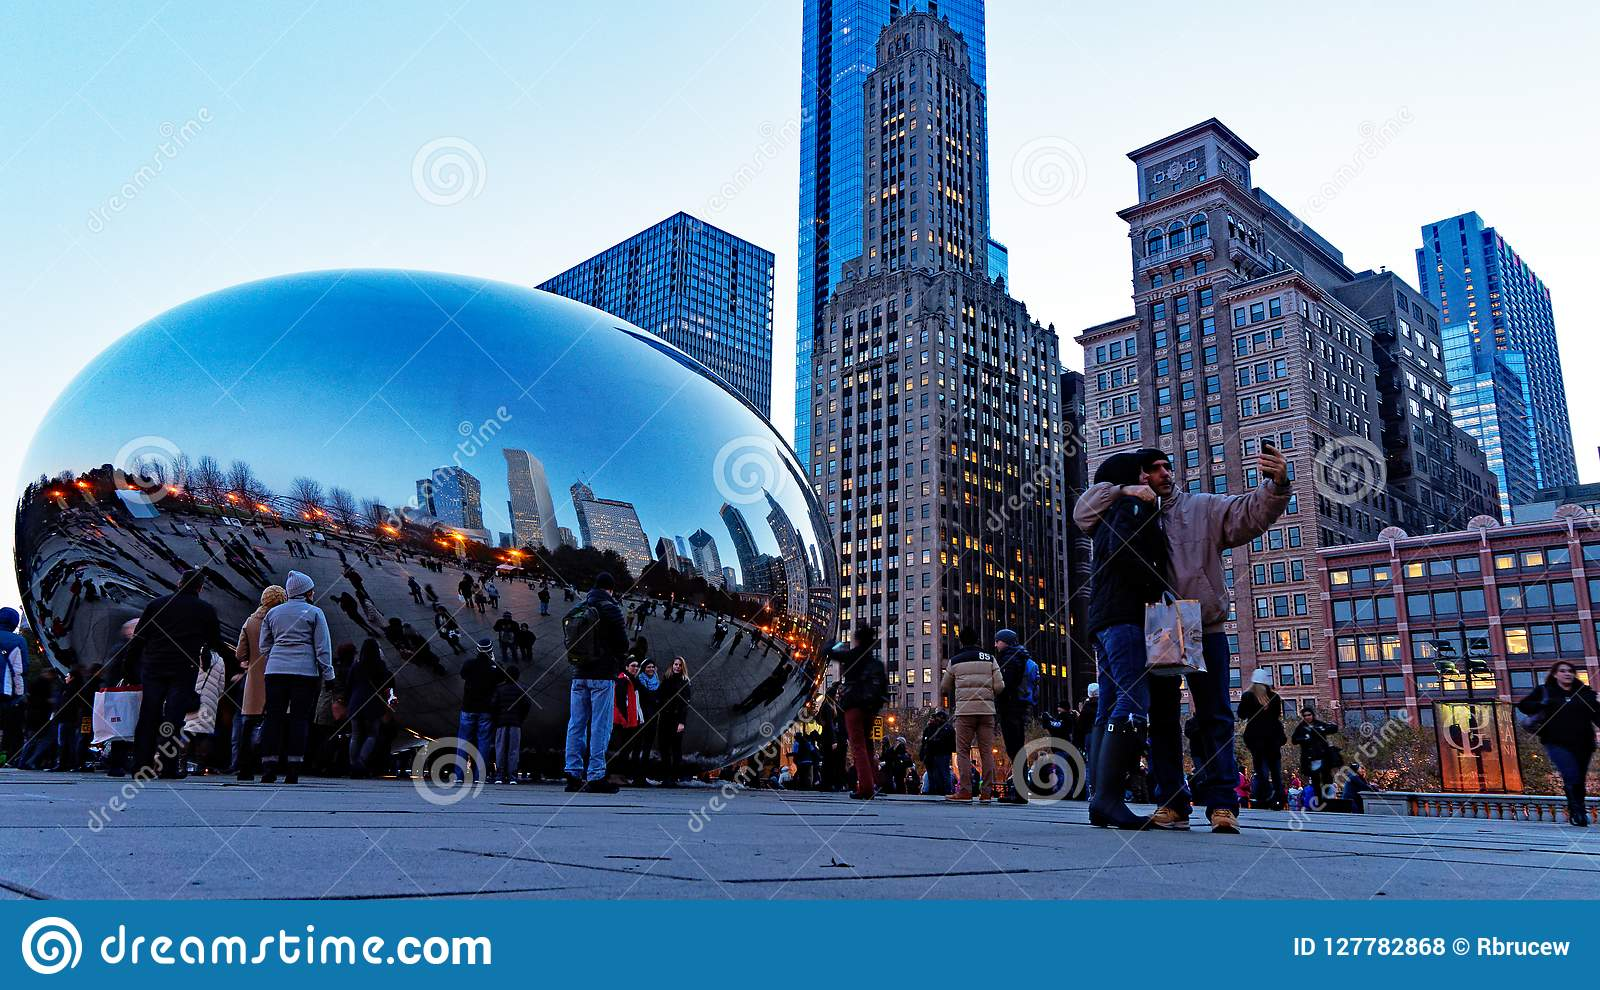 The Chicago Bean At Night, Millennium Park, Chicago Illinois, USA Editorial  Stock Photo - Image of public, skyline: 127782868